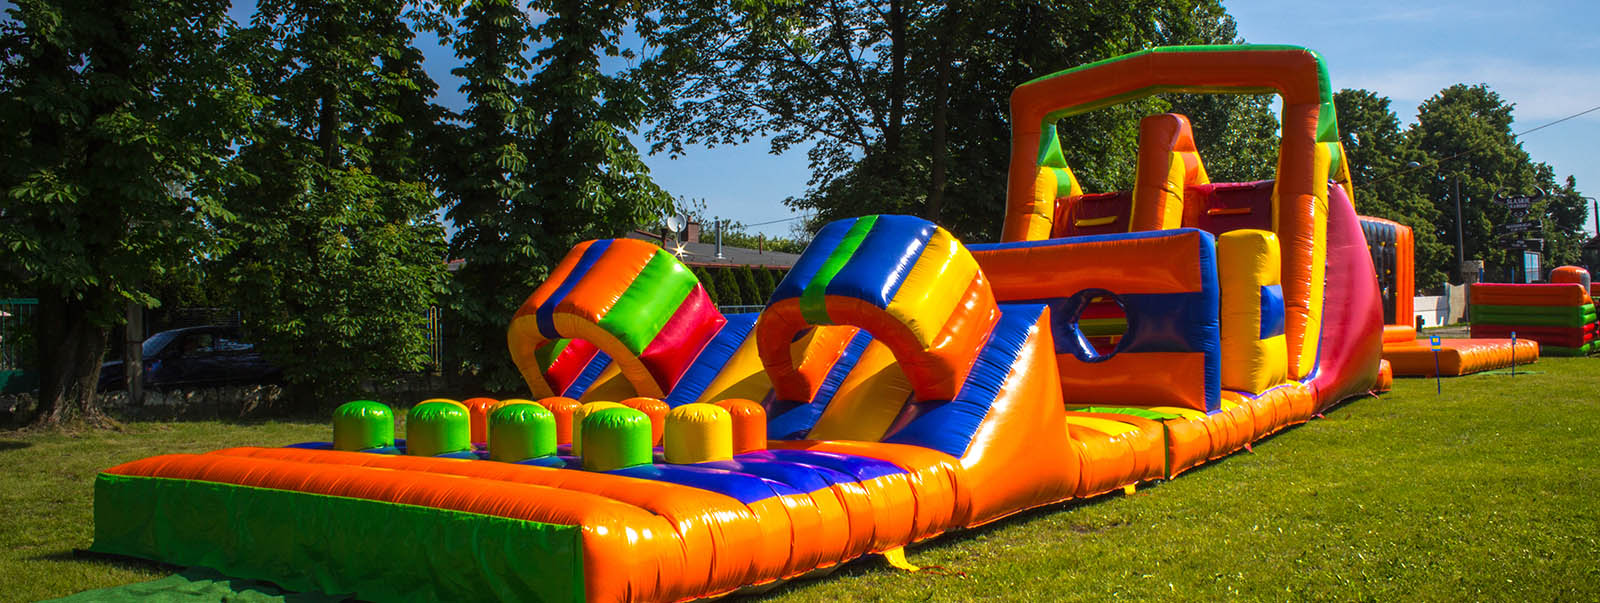 Albuquerque Inflatable Obstance Course Rental